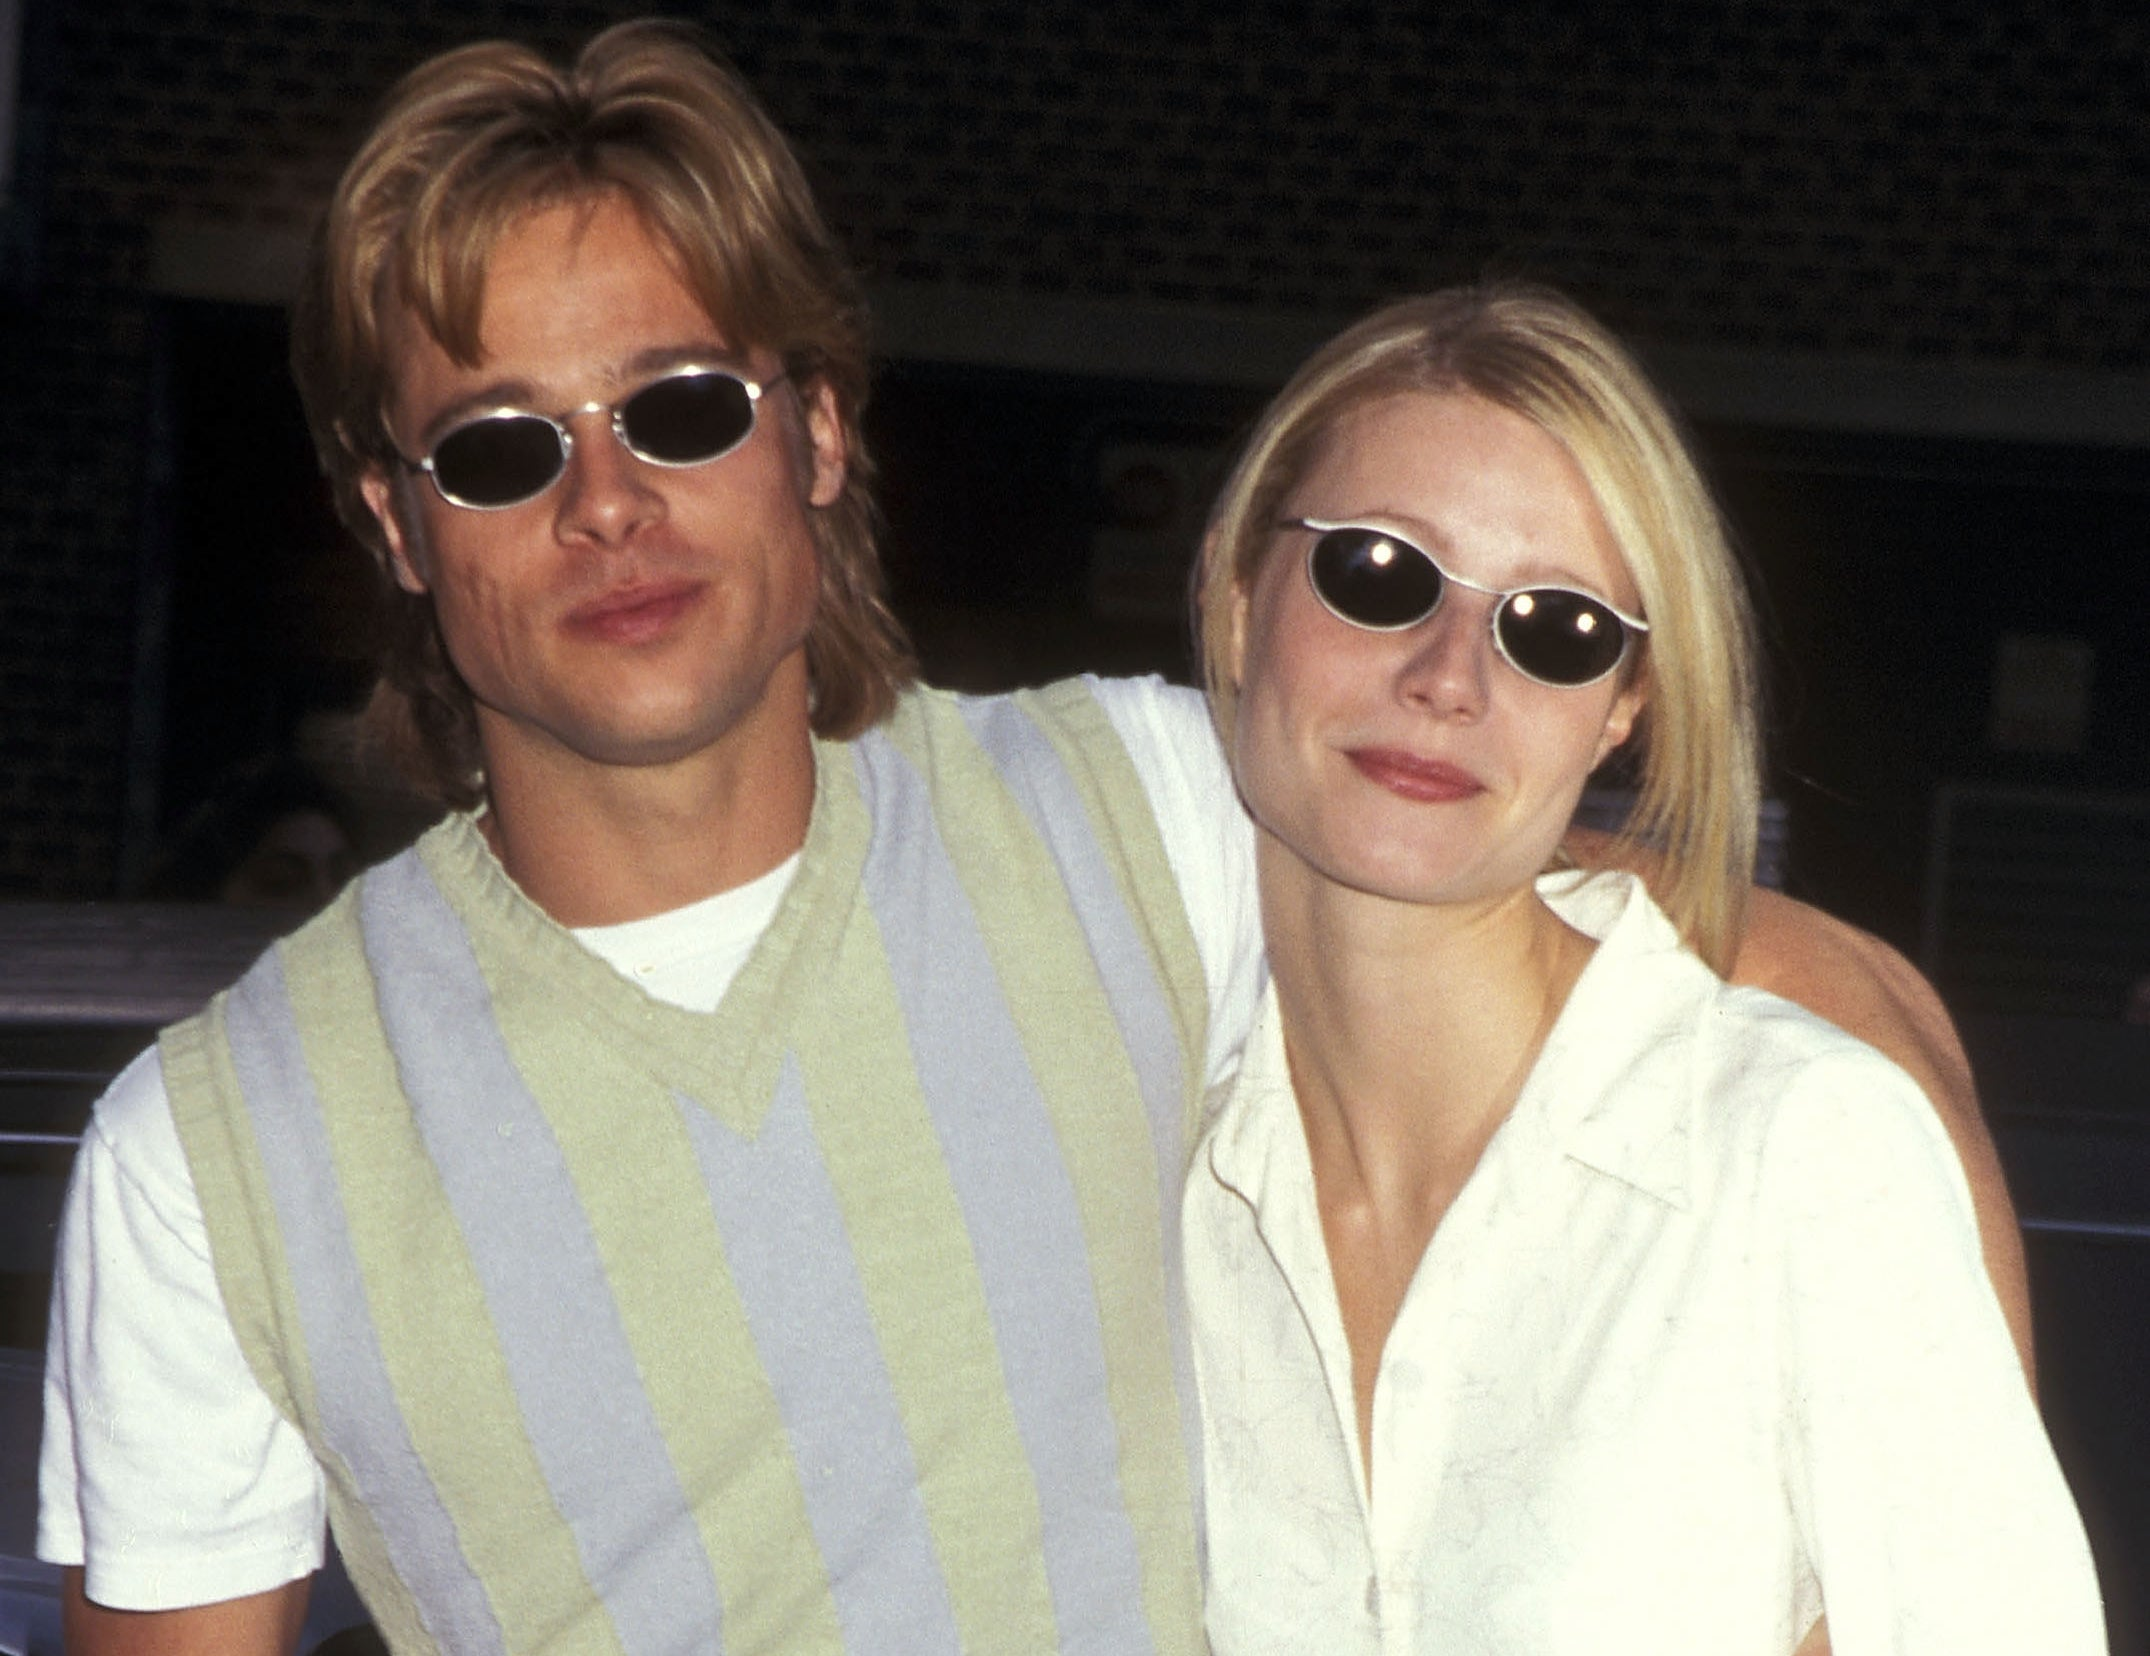 Gwyneth and Brad wear similar oval black sunglasses and pale green tops